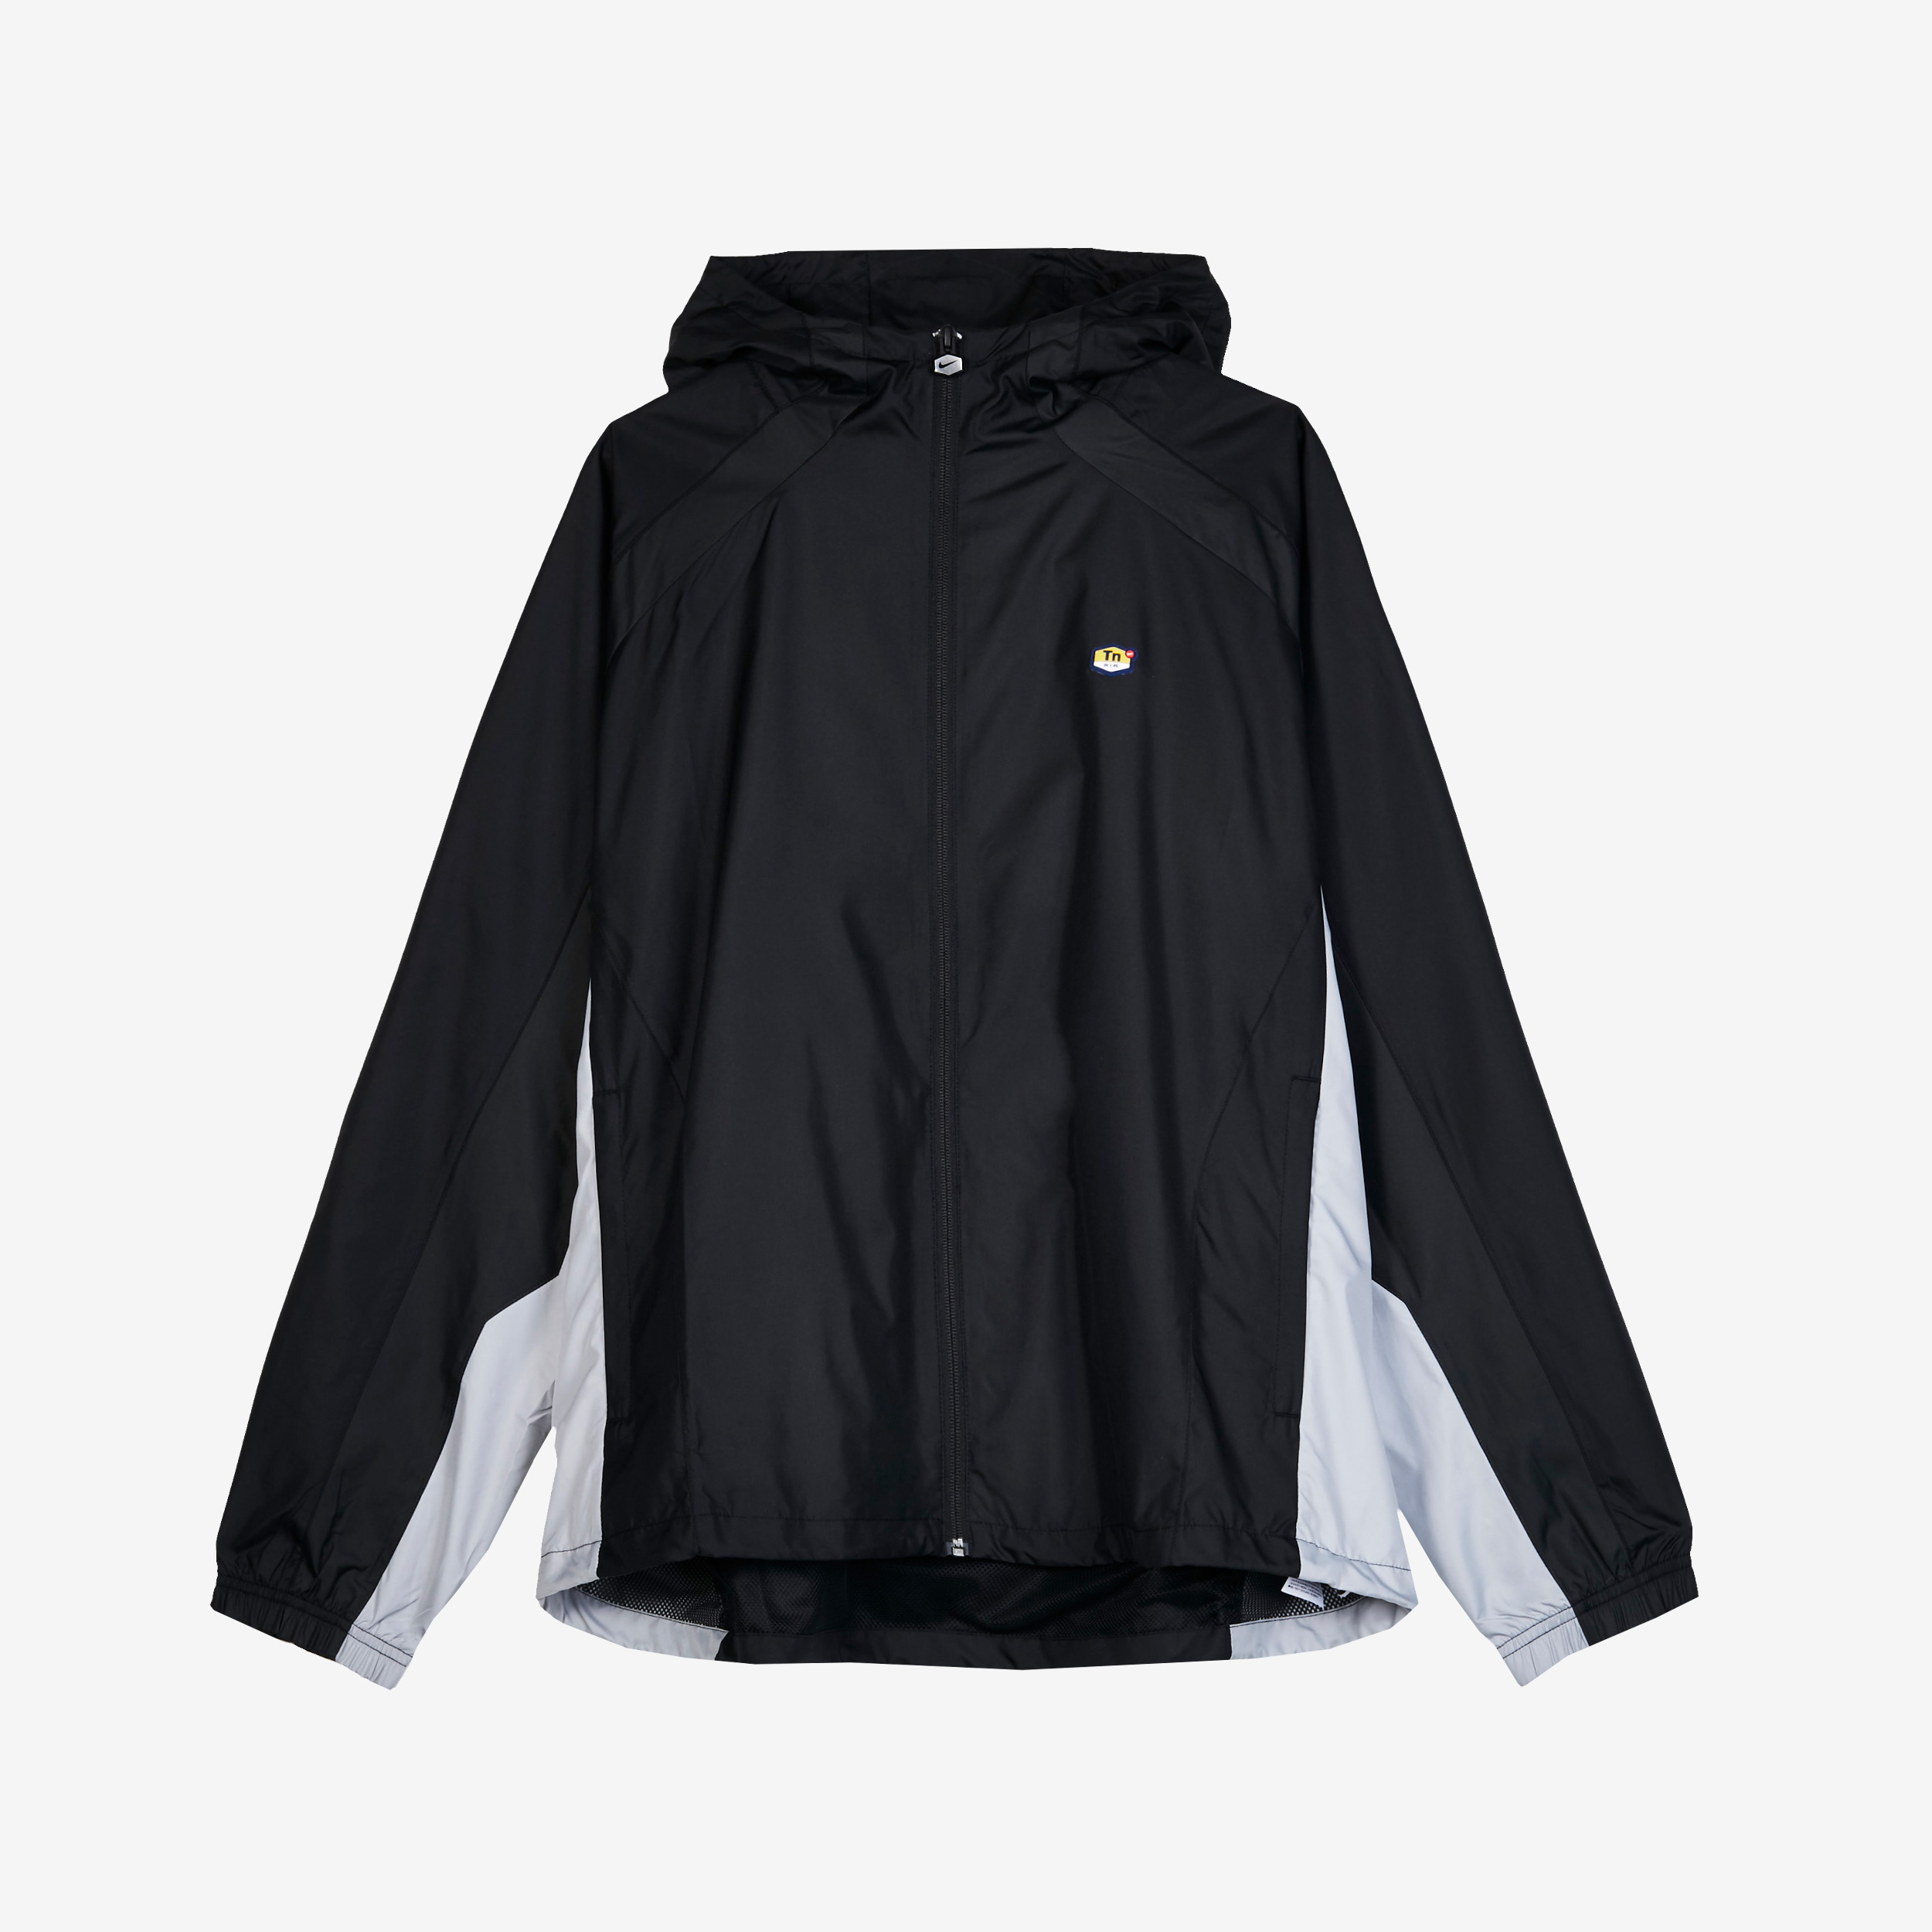 new style be3a2 110e8 Nike Tn Track Jacket - Ar5793-010 - Sneakersnstuff ...